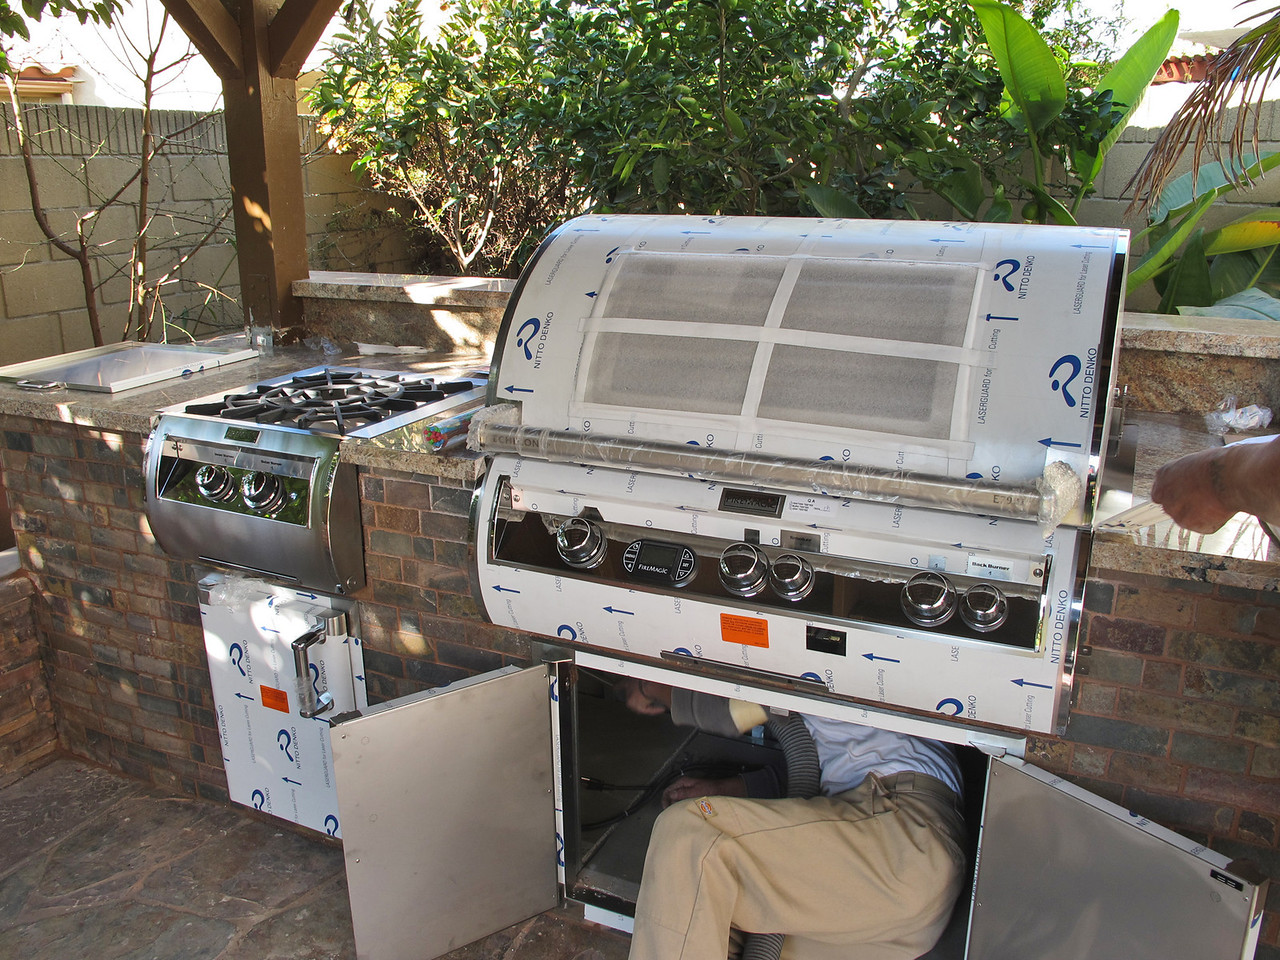 """The model for the BBQ grill is FireMagic E790I-4L1N-W (36"""" Echelon Diamond Built In Left Side Infa-Red With Magic View Window, And Rotisserie Natural Gas) -- <br /> <a href=""""http://www.bbqguys.com/item_name_Fire-Magic-Echelon-Diamond-E790-Natural-Gas-Built-in-Grill-With-One-Infrare_path__item_2791800.html"""">http://www.bbqguys.com/item_name_Fire-Magic-Echelon-Diamond-E790-Natural-Gas-Built-in-Grill-With-One-Infrare_path__item_2791800.html</a><br /> <br /> The power burner is FireMagic 19-4B2N-0 (Diamond Echelon Built-in Power Burner w/ Cast Brass Burner) -- <br /> <a href=""""http://www.bbqguys.com/item_name_Fire-Magic-Echelon-Diamond-Natural-Gas-Built-In-Power-Burner-With-Porcelain_path__item_2791922.html"""">http://www.bbqguys.com/item_name_Fire-Magic-Echelon-Diamond-Natural-Gas-Built-In-Power-Burner-With-Porcelain_path__item_2791922.html</a><br /> <br /> Echelon Double Access Doors - 43930S    by  FireMagic -- <br /> <a href=""""http://www.bbqguys.com/item_item_2125474.html"""">http://www.bbqguys.com/item_item_2125474.html</a><br /> <br /> Echelon Single   Access Doors - 43920-SL by  FireMagic -- <br /> <a href=""""http://www.bbqguys.com/item_name_Fire-Magic-Echelon-20x14-Left-Hinged-Stainless-Single-Access-Door_path__item_2125472.html"""">http://www.bbqguys.com/item_name_Fire-Magic-Echelon-20x14-Left-Hinged-Stainless-Single-Access-Door_path__item_2125472.html</a>"""